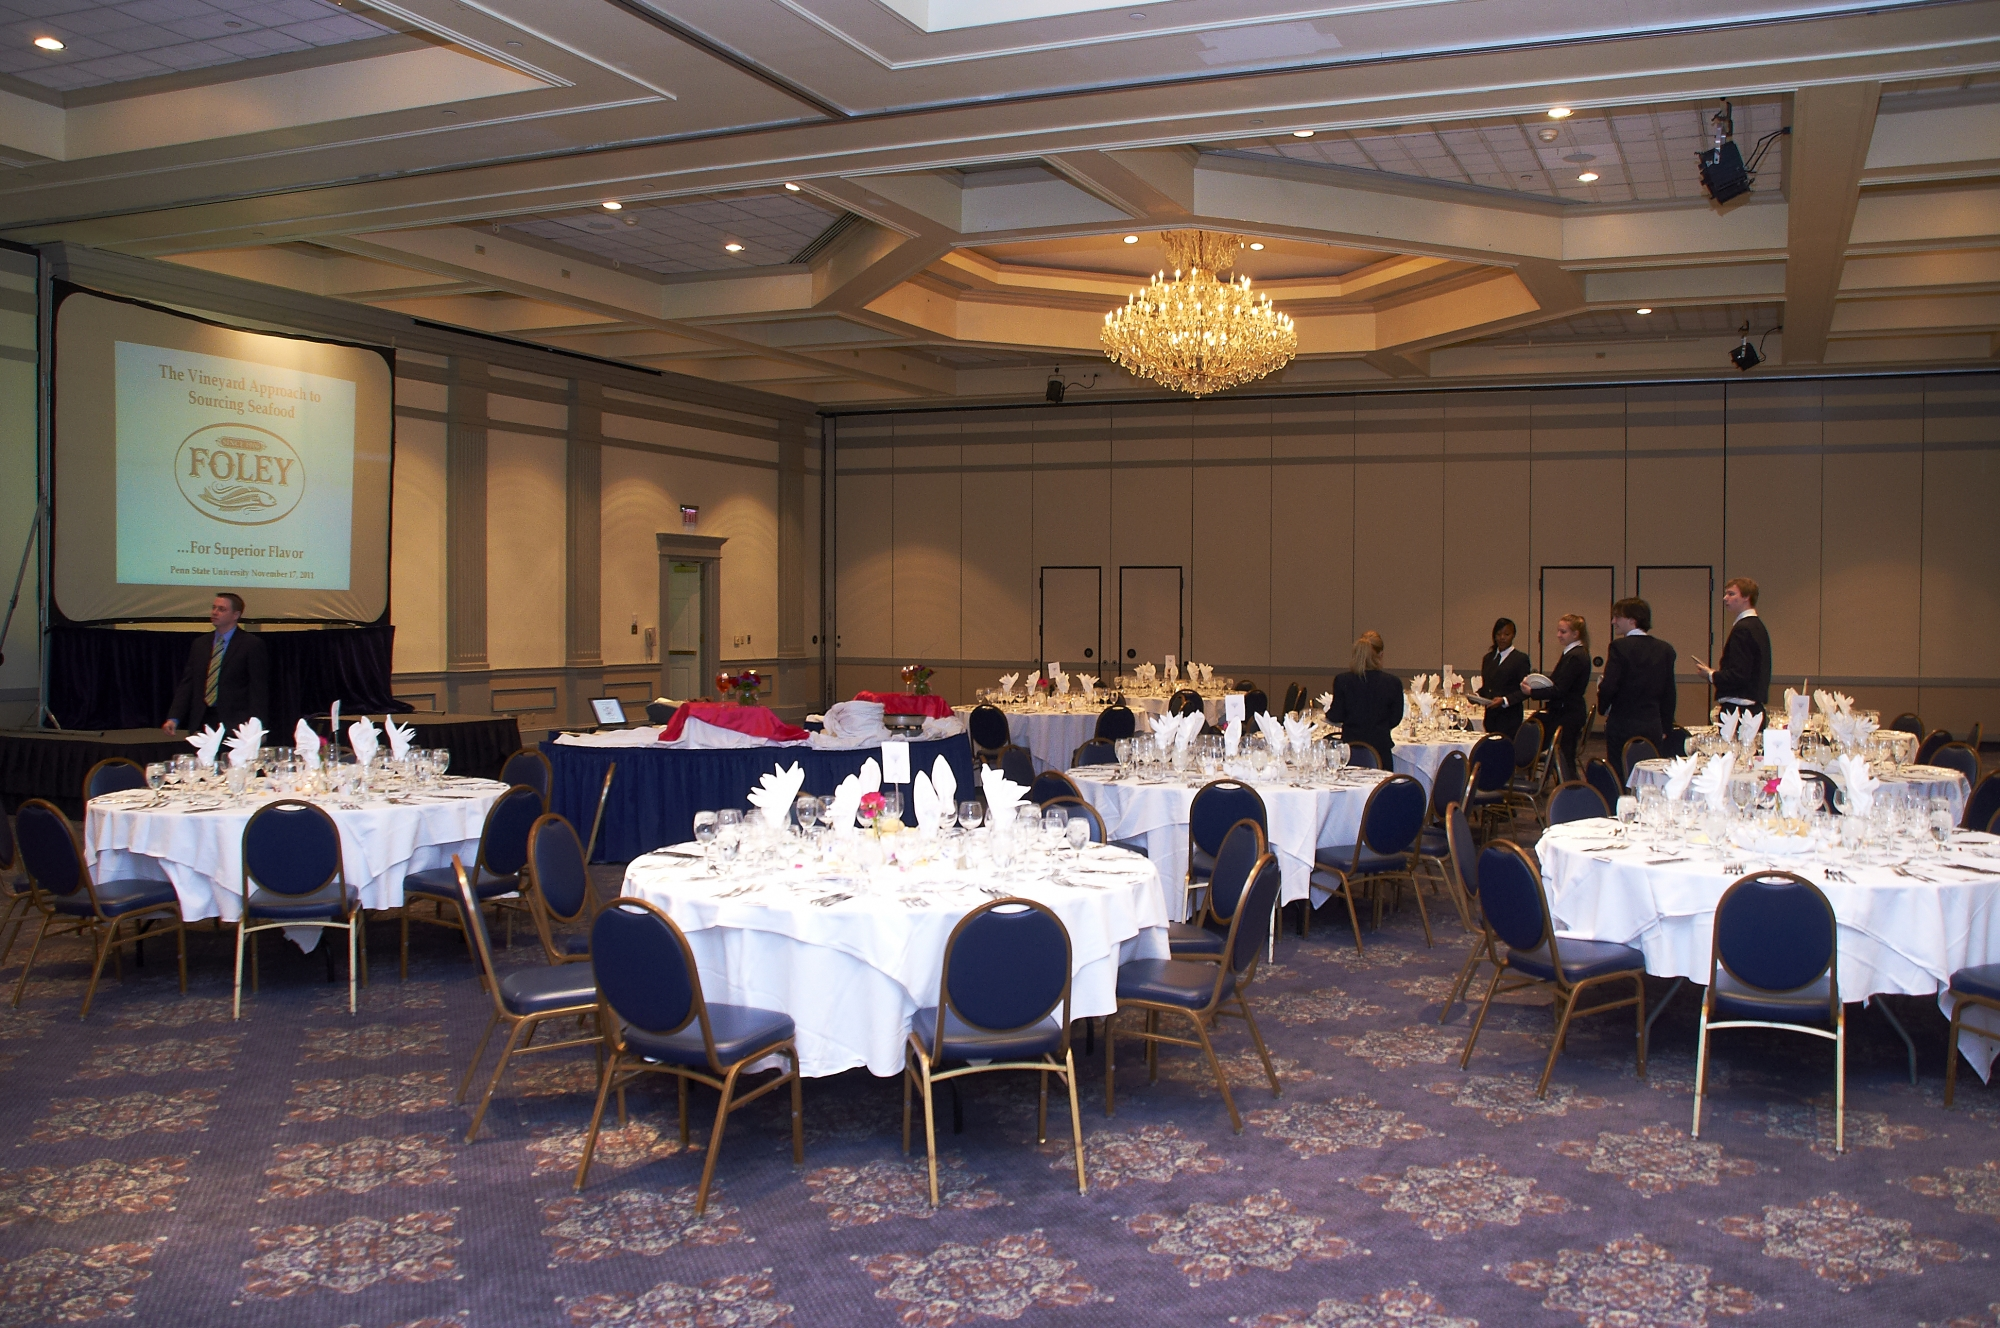 Nittany Lion Inn Dining Room Pleasing Ballroom  The Nittany Lion Inn  The Official Site  Luxury Hotel . Decorating Design